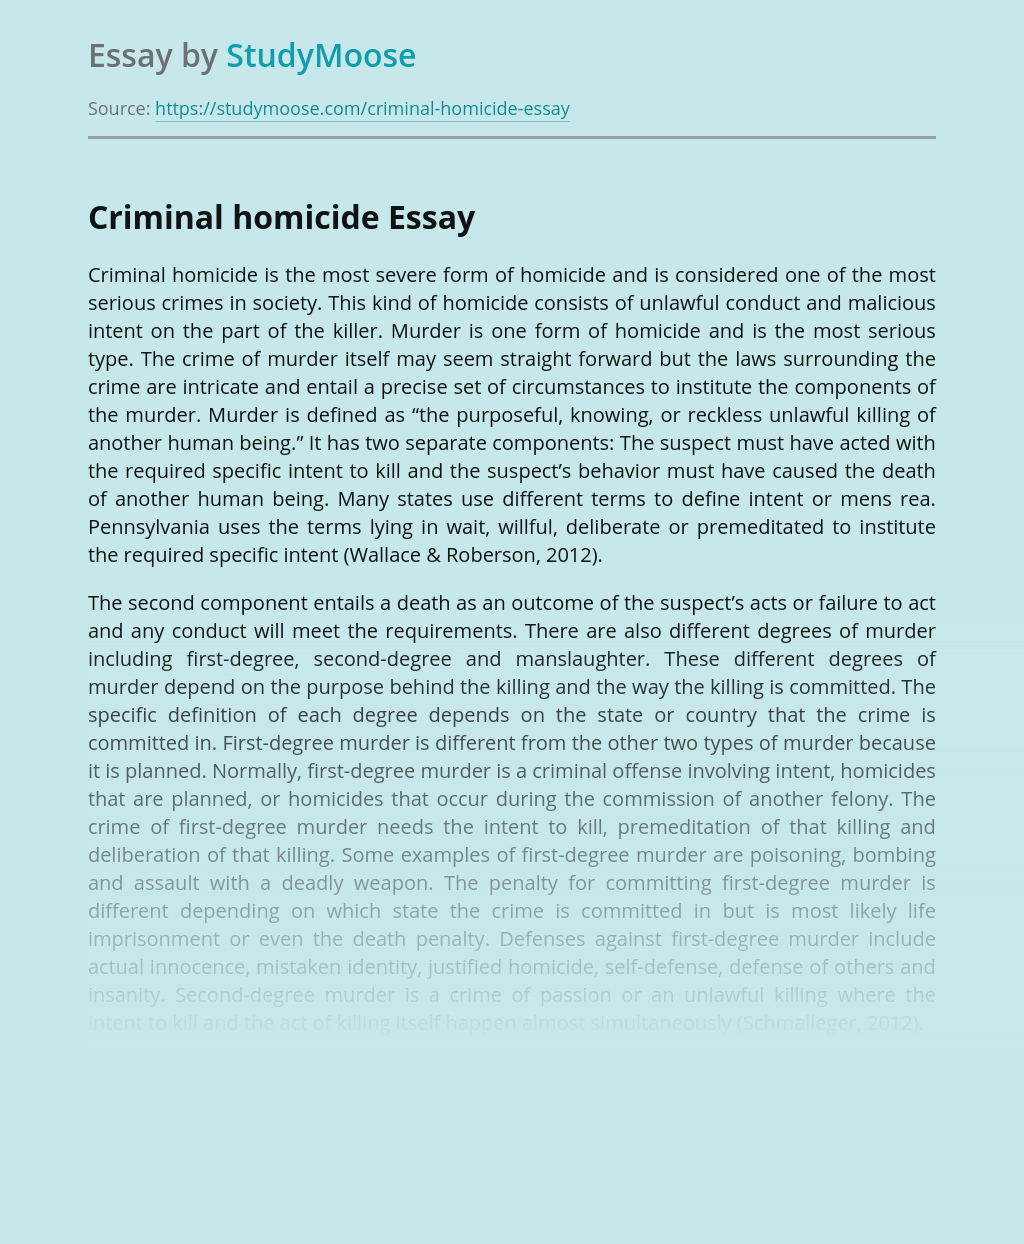 About Criminal Homicide In Society